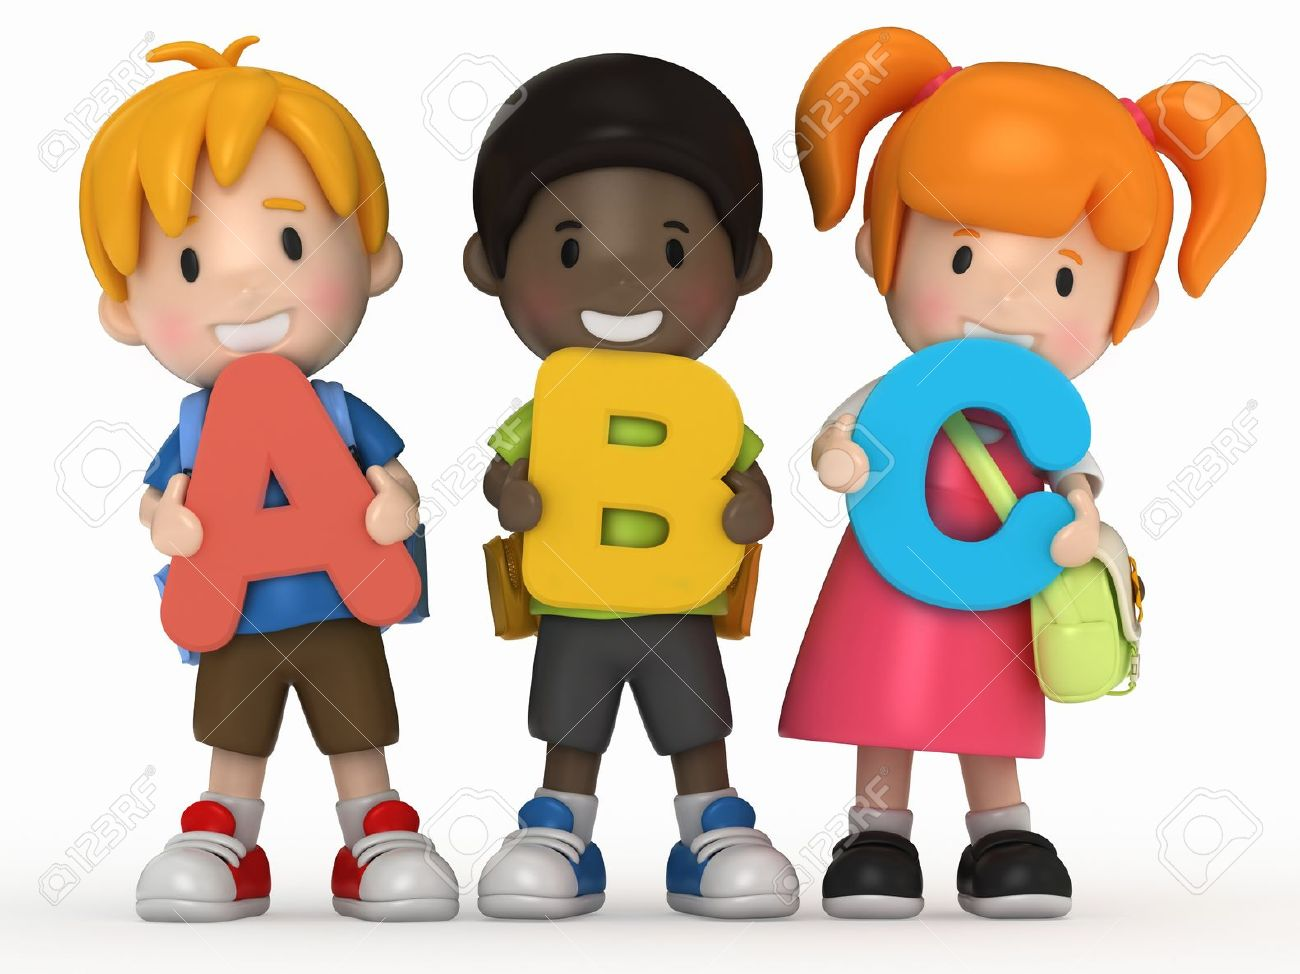 3D Render Of School Kids Holding ABC Stock Photo, Picture And.